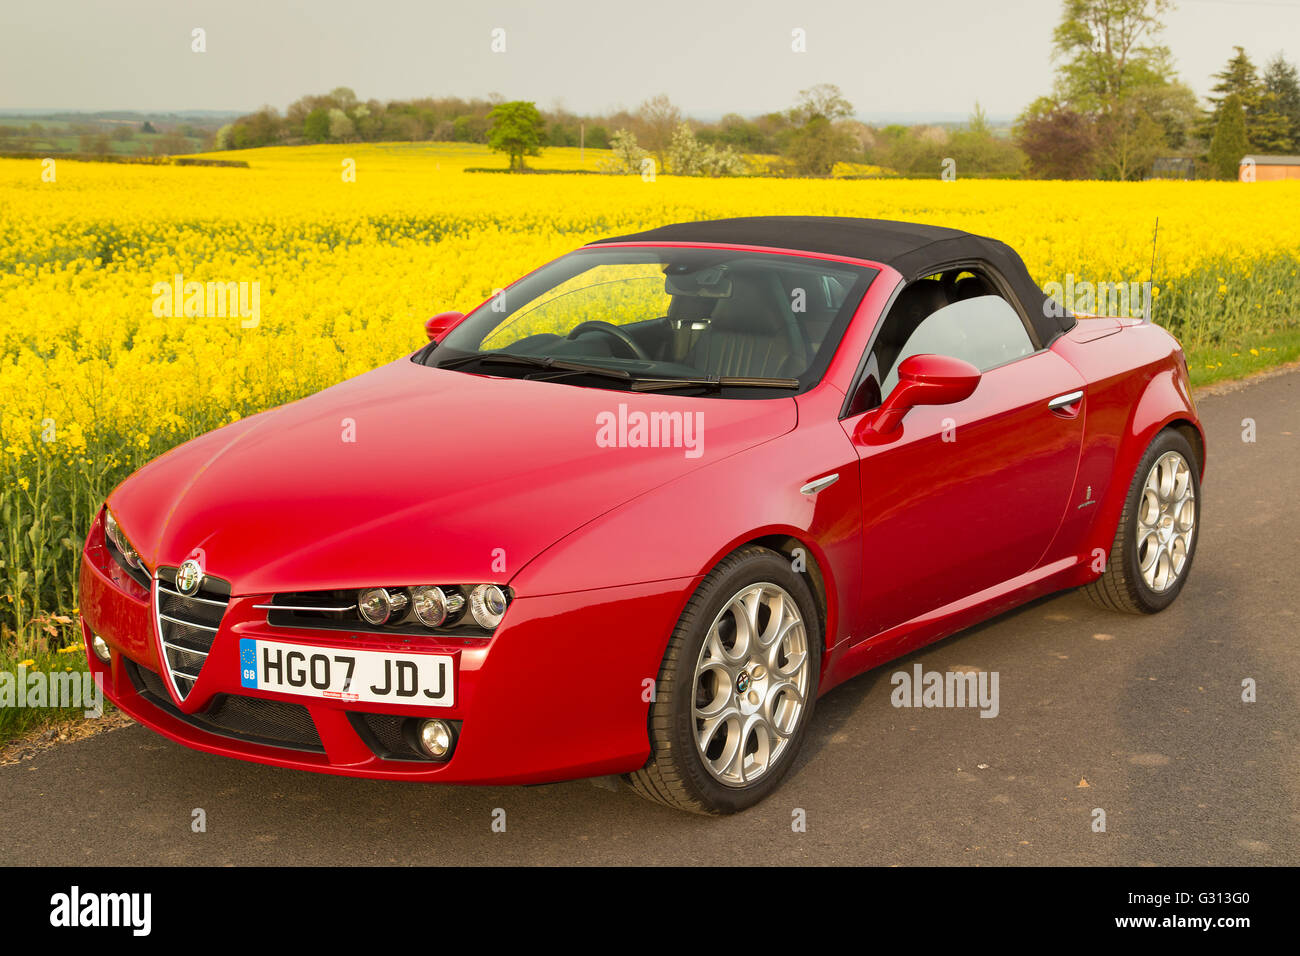 alfa romeo spider soft top convertible sports car in red with black stock photo royalty free. Black Bedroom Furniture Sets. Home Design Ideas